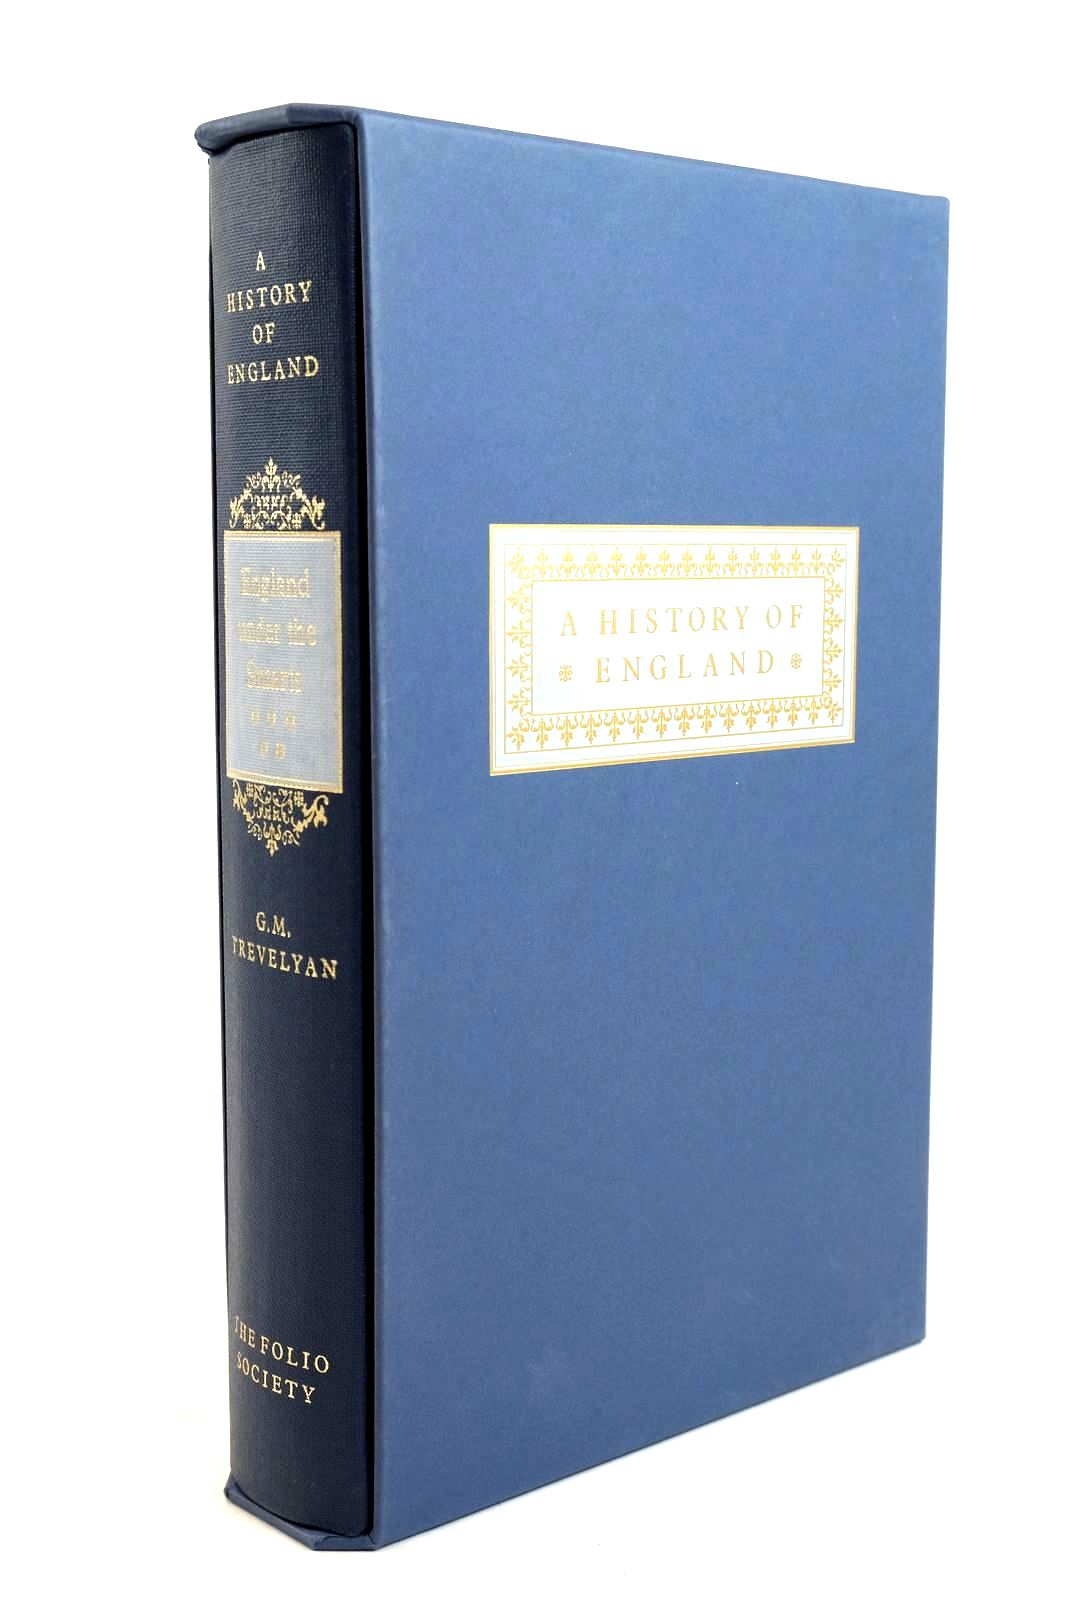 Photo of ENGLAND UNDER THE STUARTS written by Trevelyan, G.M. published by Folio Society (STOCK CODE: 1320543)  for sale by Stella & Rose's Books